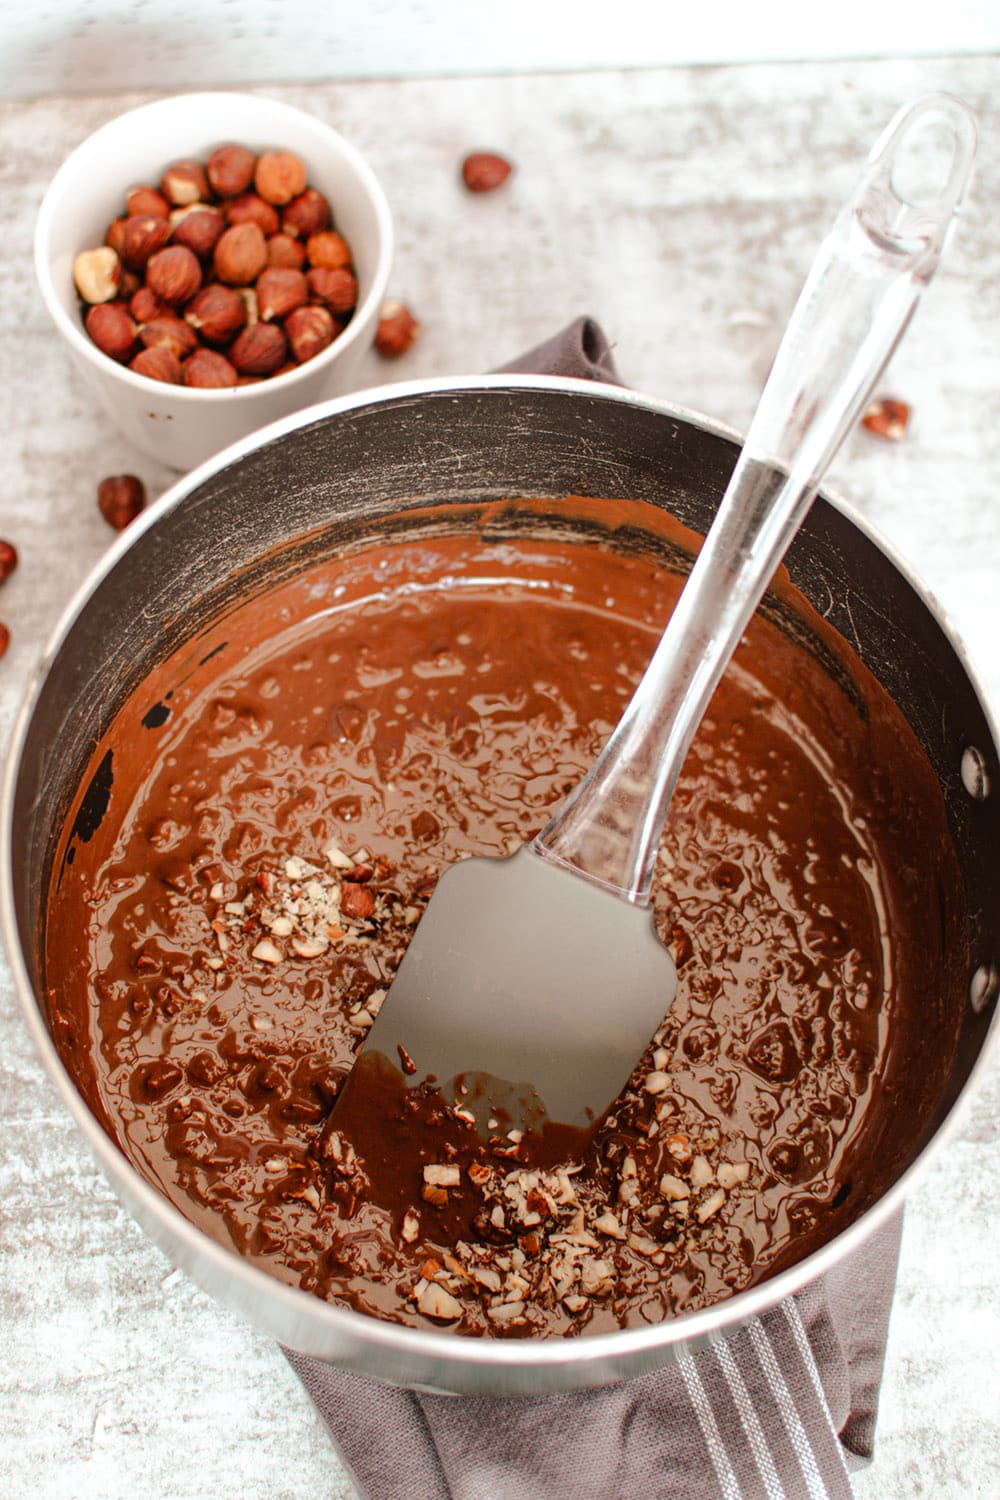 stirring melted chocolate and coconut in a pan